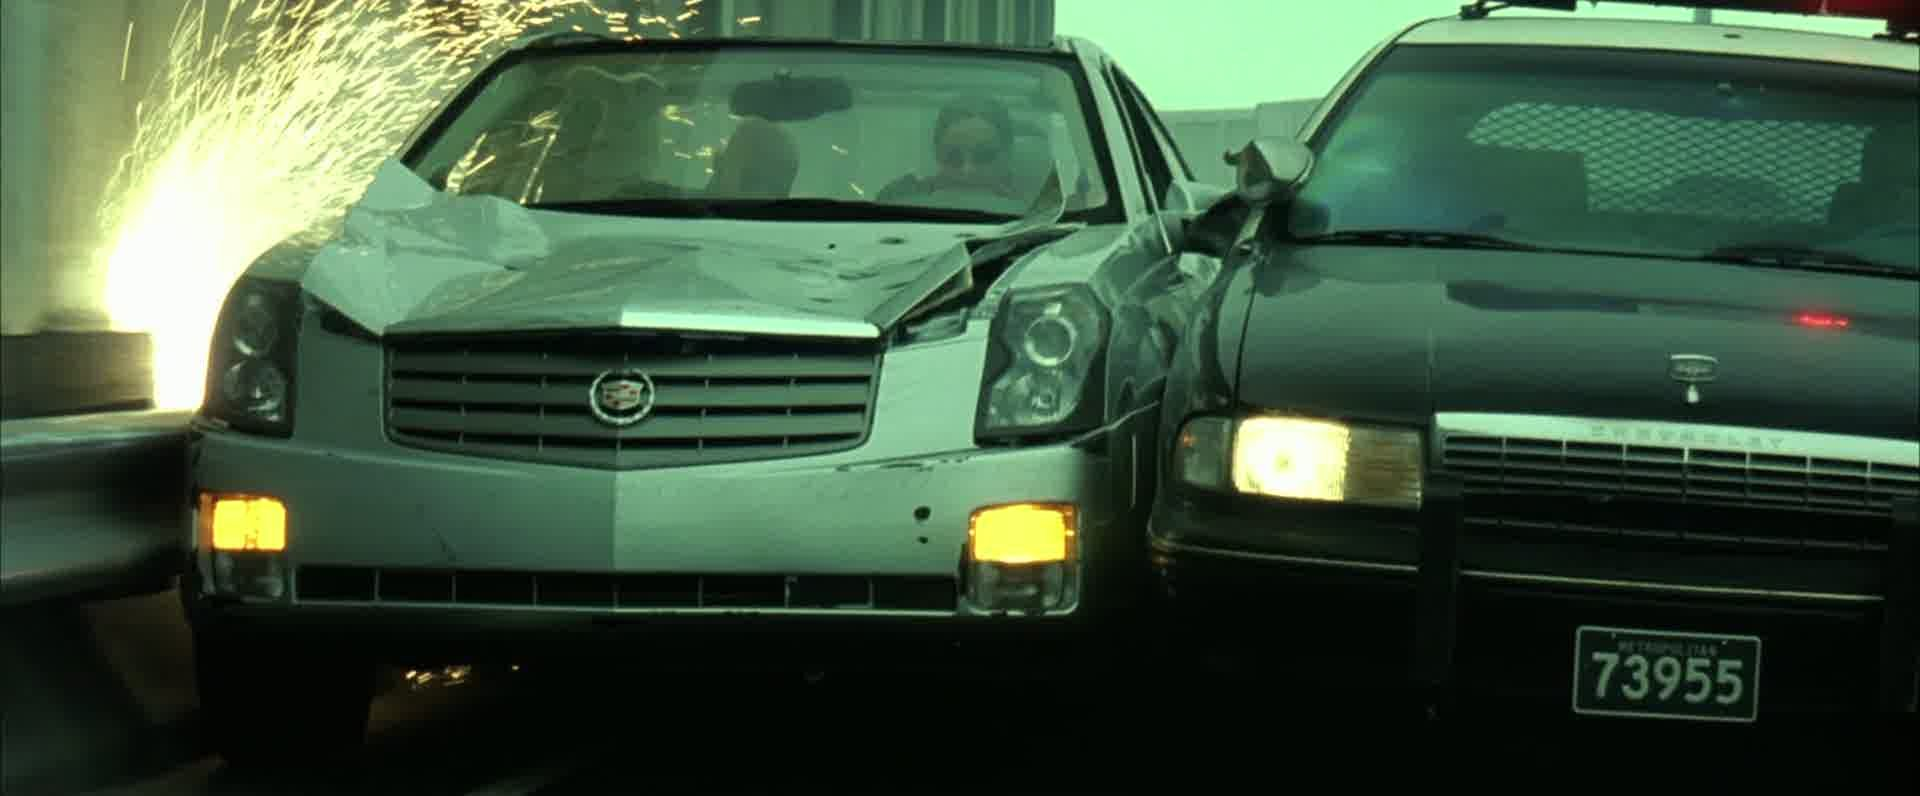 Imcdb Org 2003 Cadillac Cts In Quot The Matrix Reloaded 2003 Quot